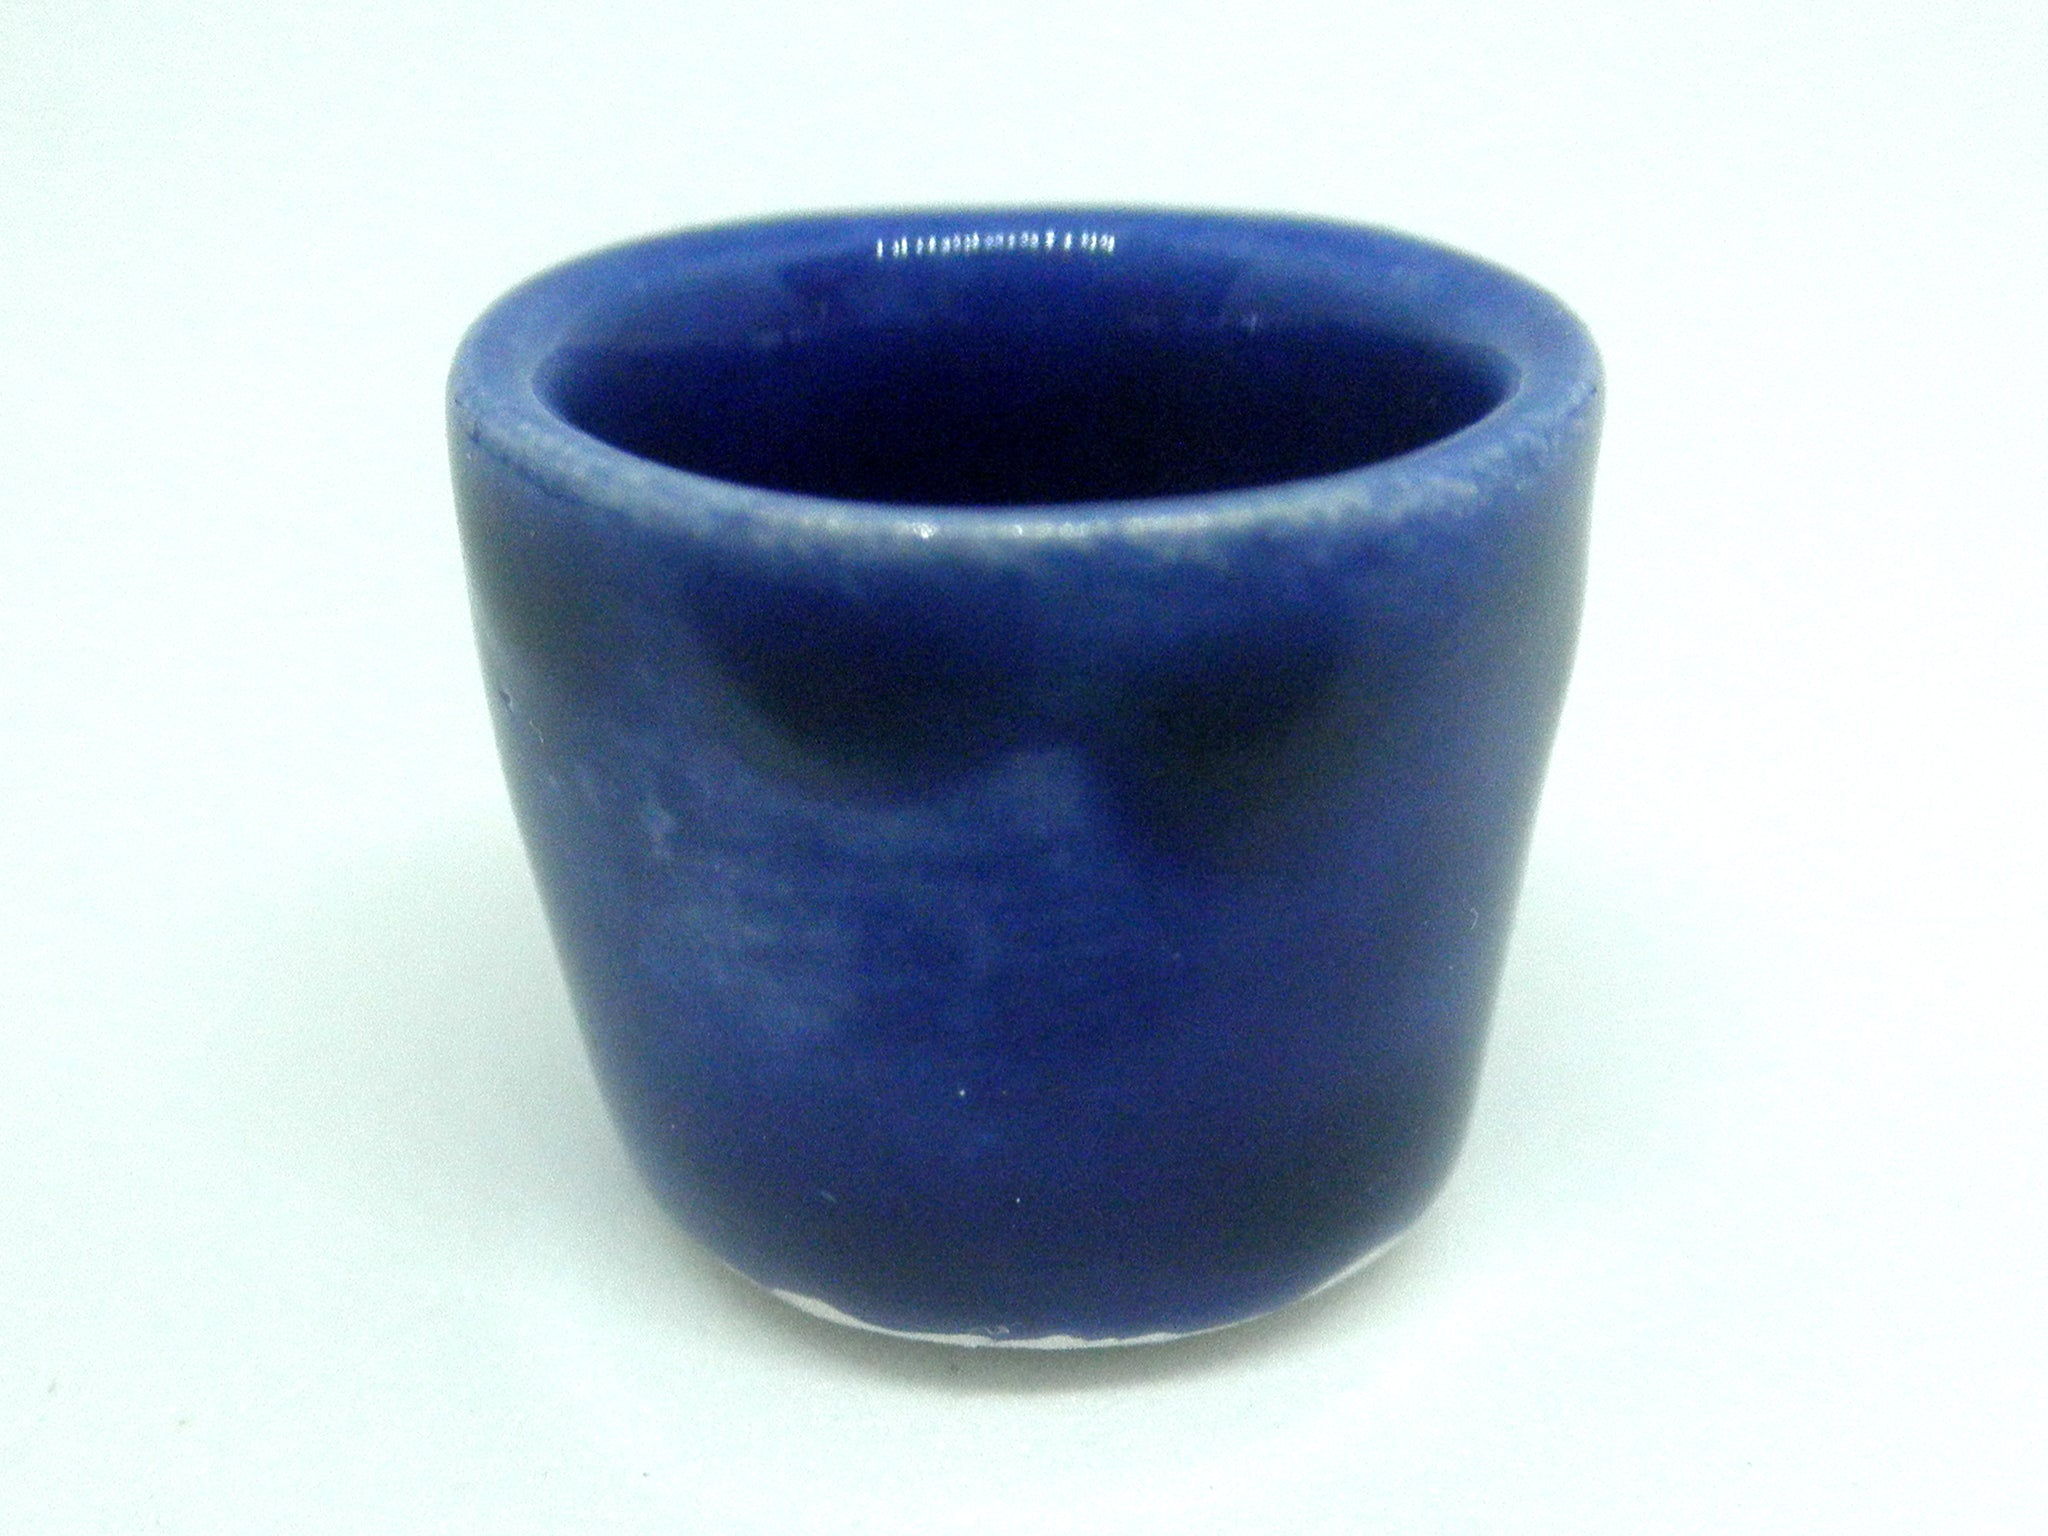 Miniature ceramic planter - royal blue